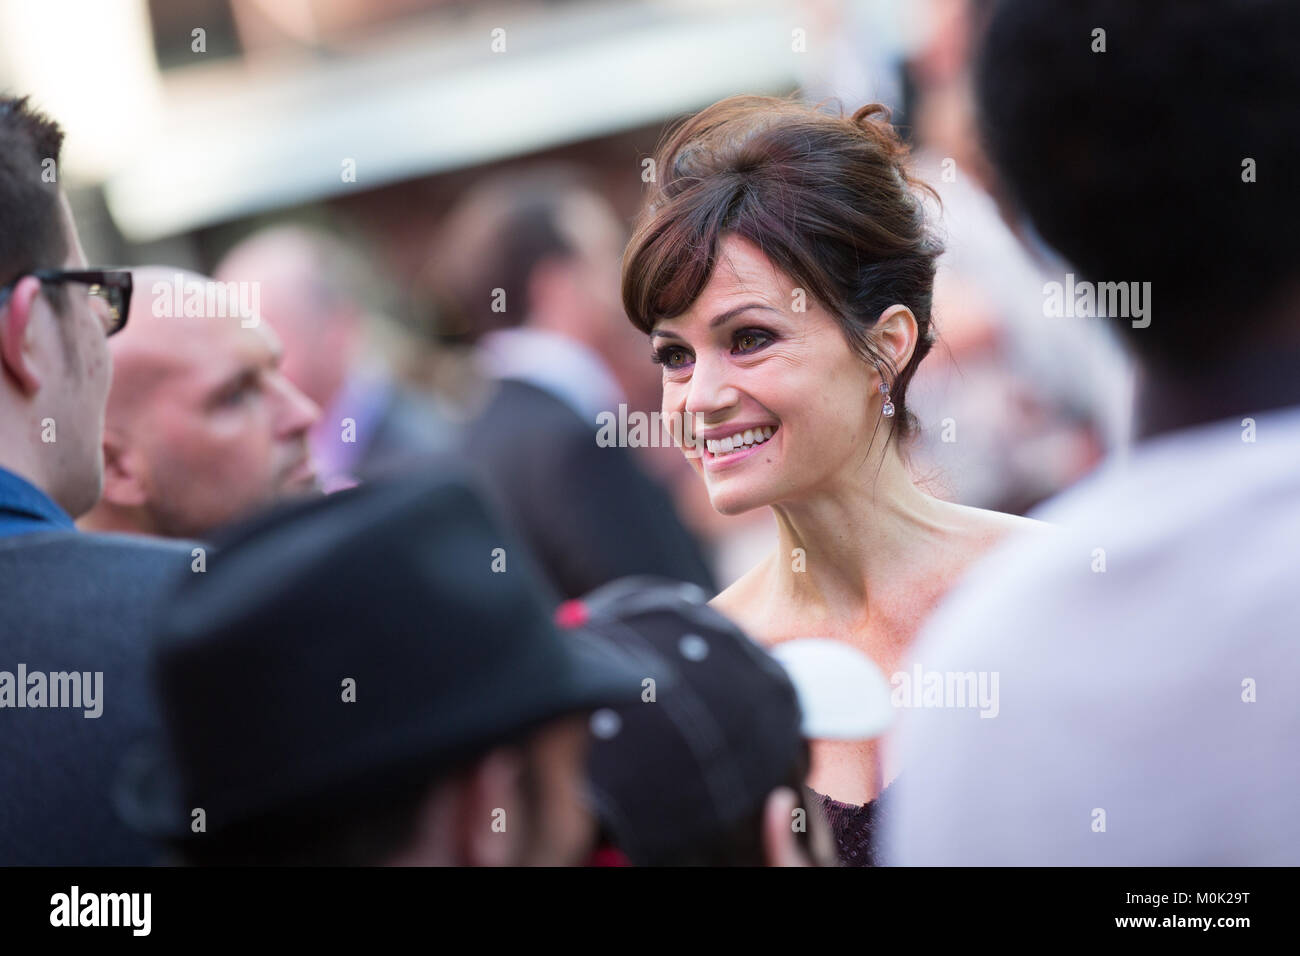 London, UK, 21st May 2015, Carla Gugino, World Premiere of 'San Andreas' at the Odeon Leicester Square Cinema. - Stock Image